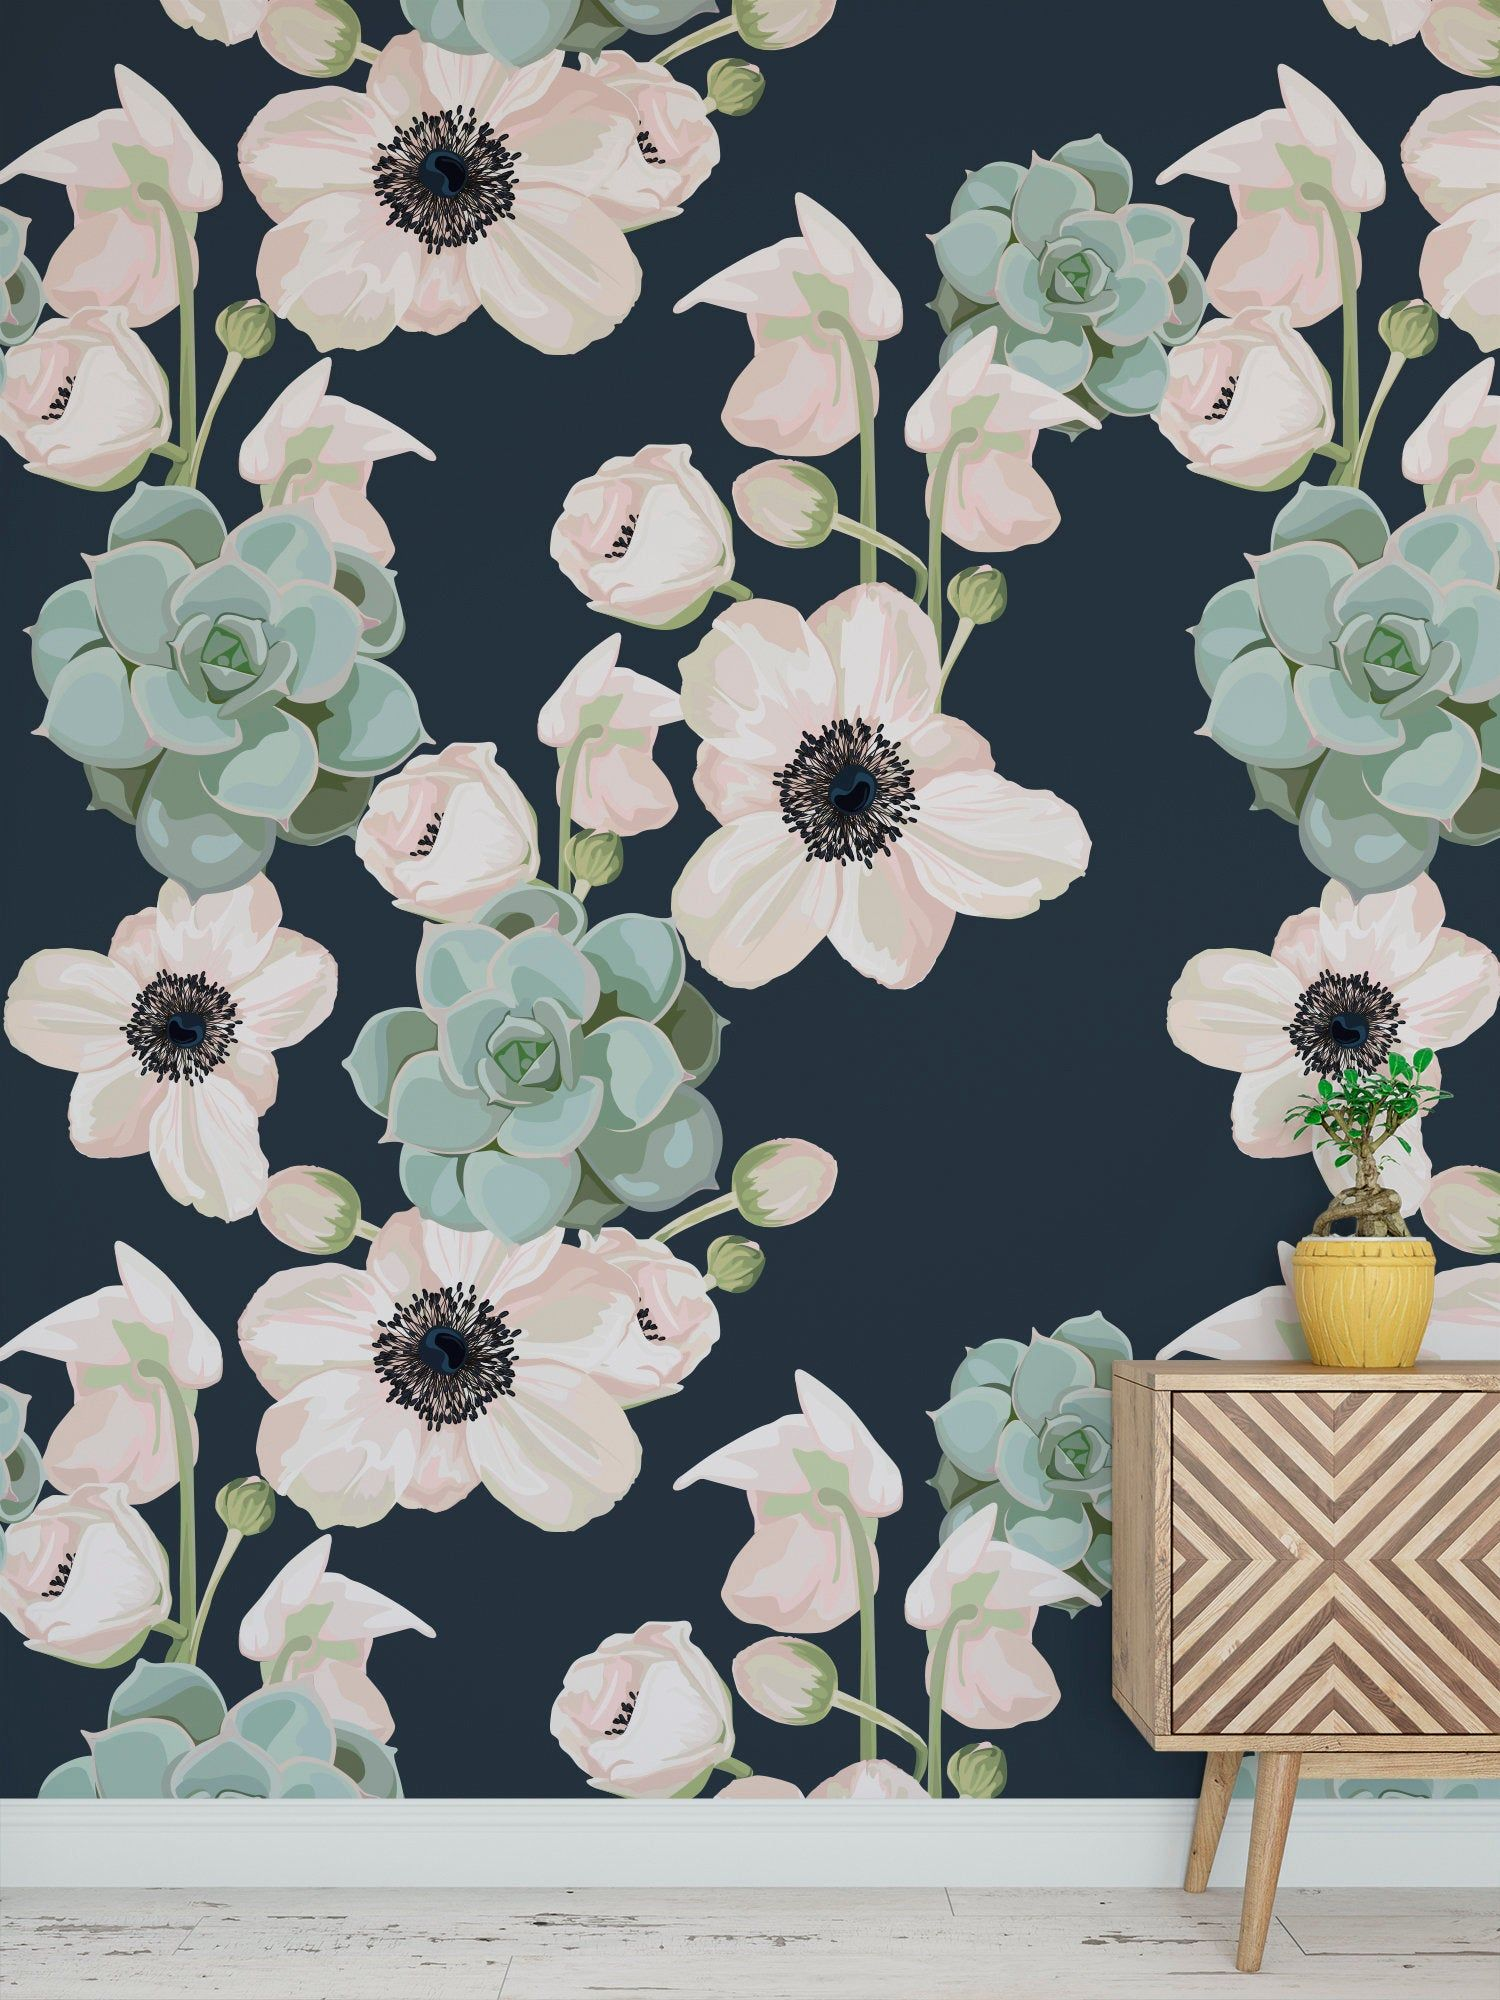 High Quality Peel And Stick Removable Self Adhesive Wallpaper Etsy Peel And Stick Wallpaper Floral Wallpaper Self Adhesive Wallpaper